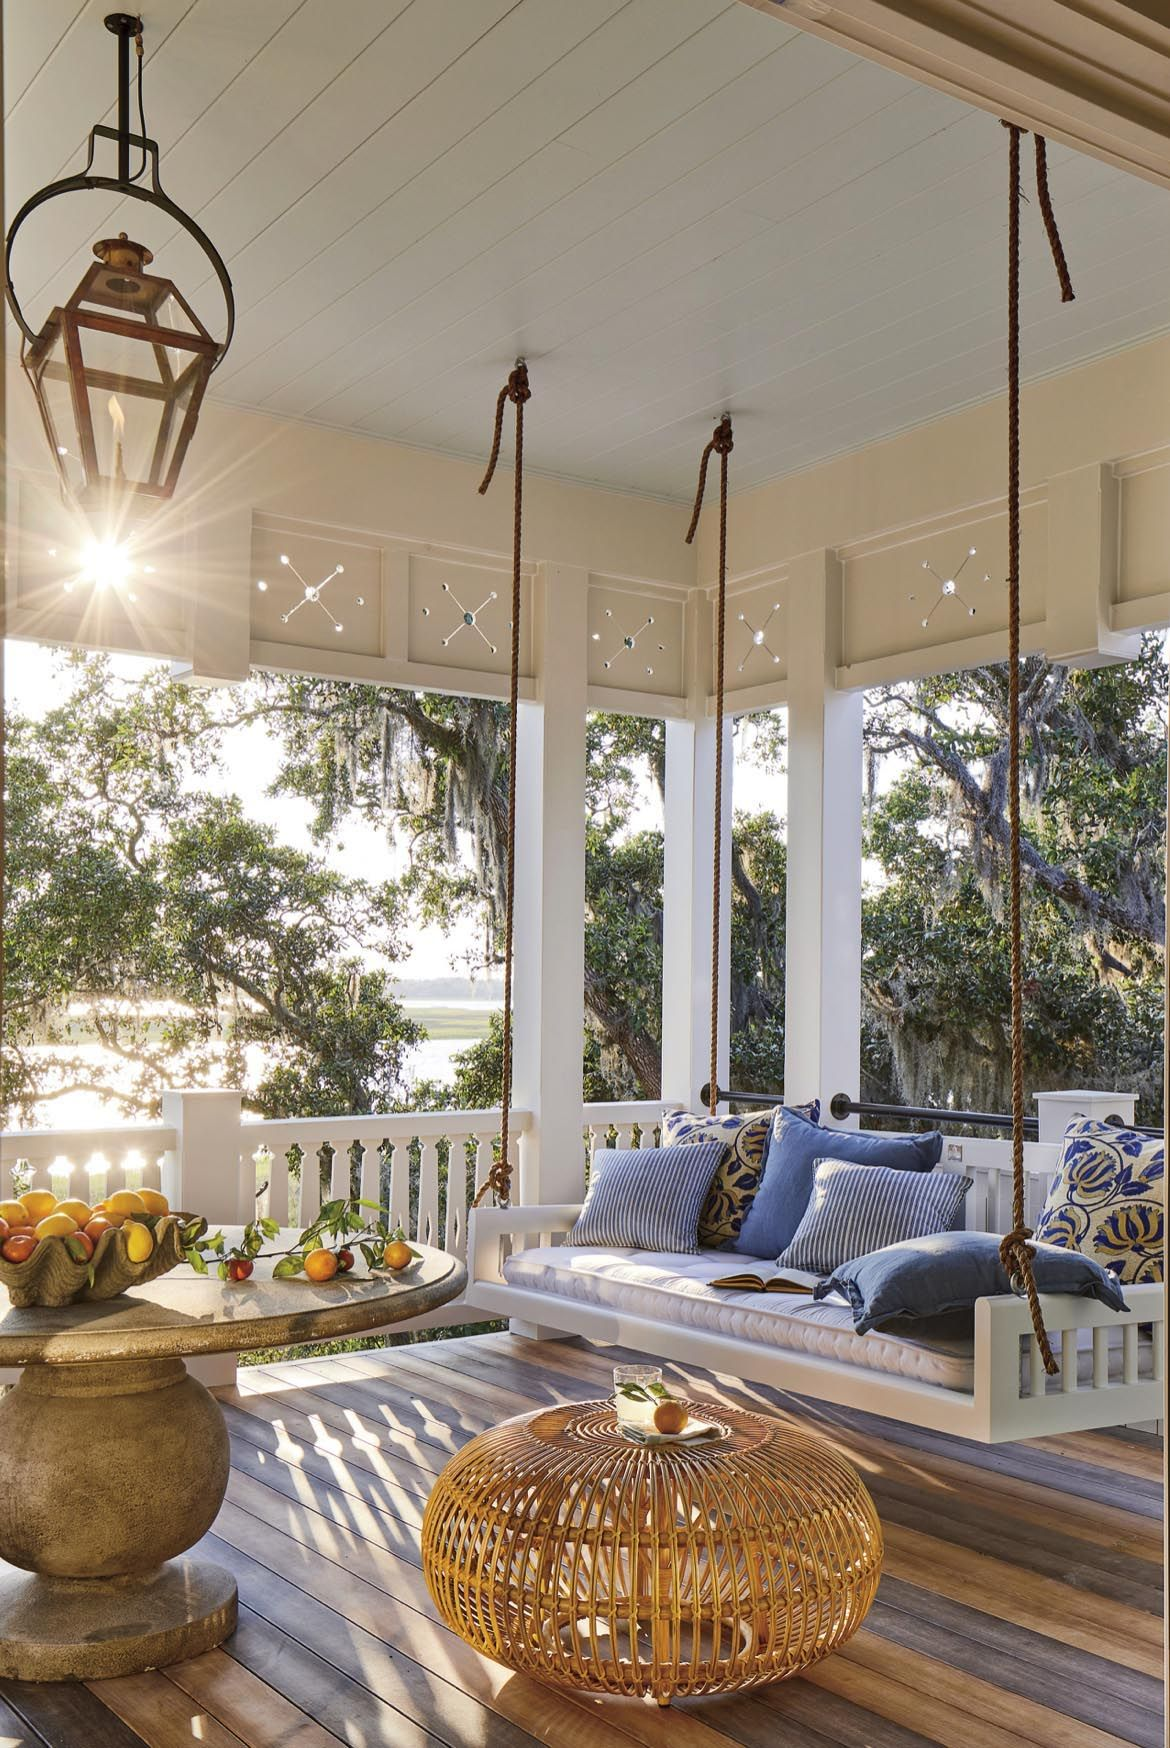 15+ Charming Southern Style Screened Porch Ideas To Love All Season